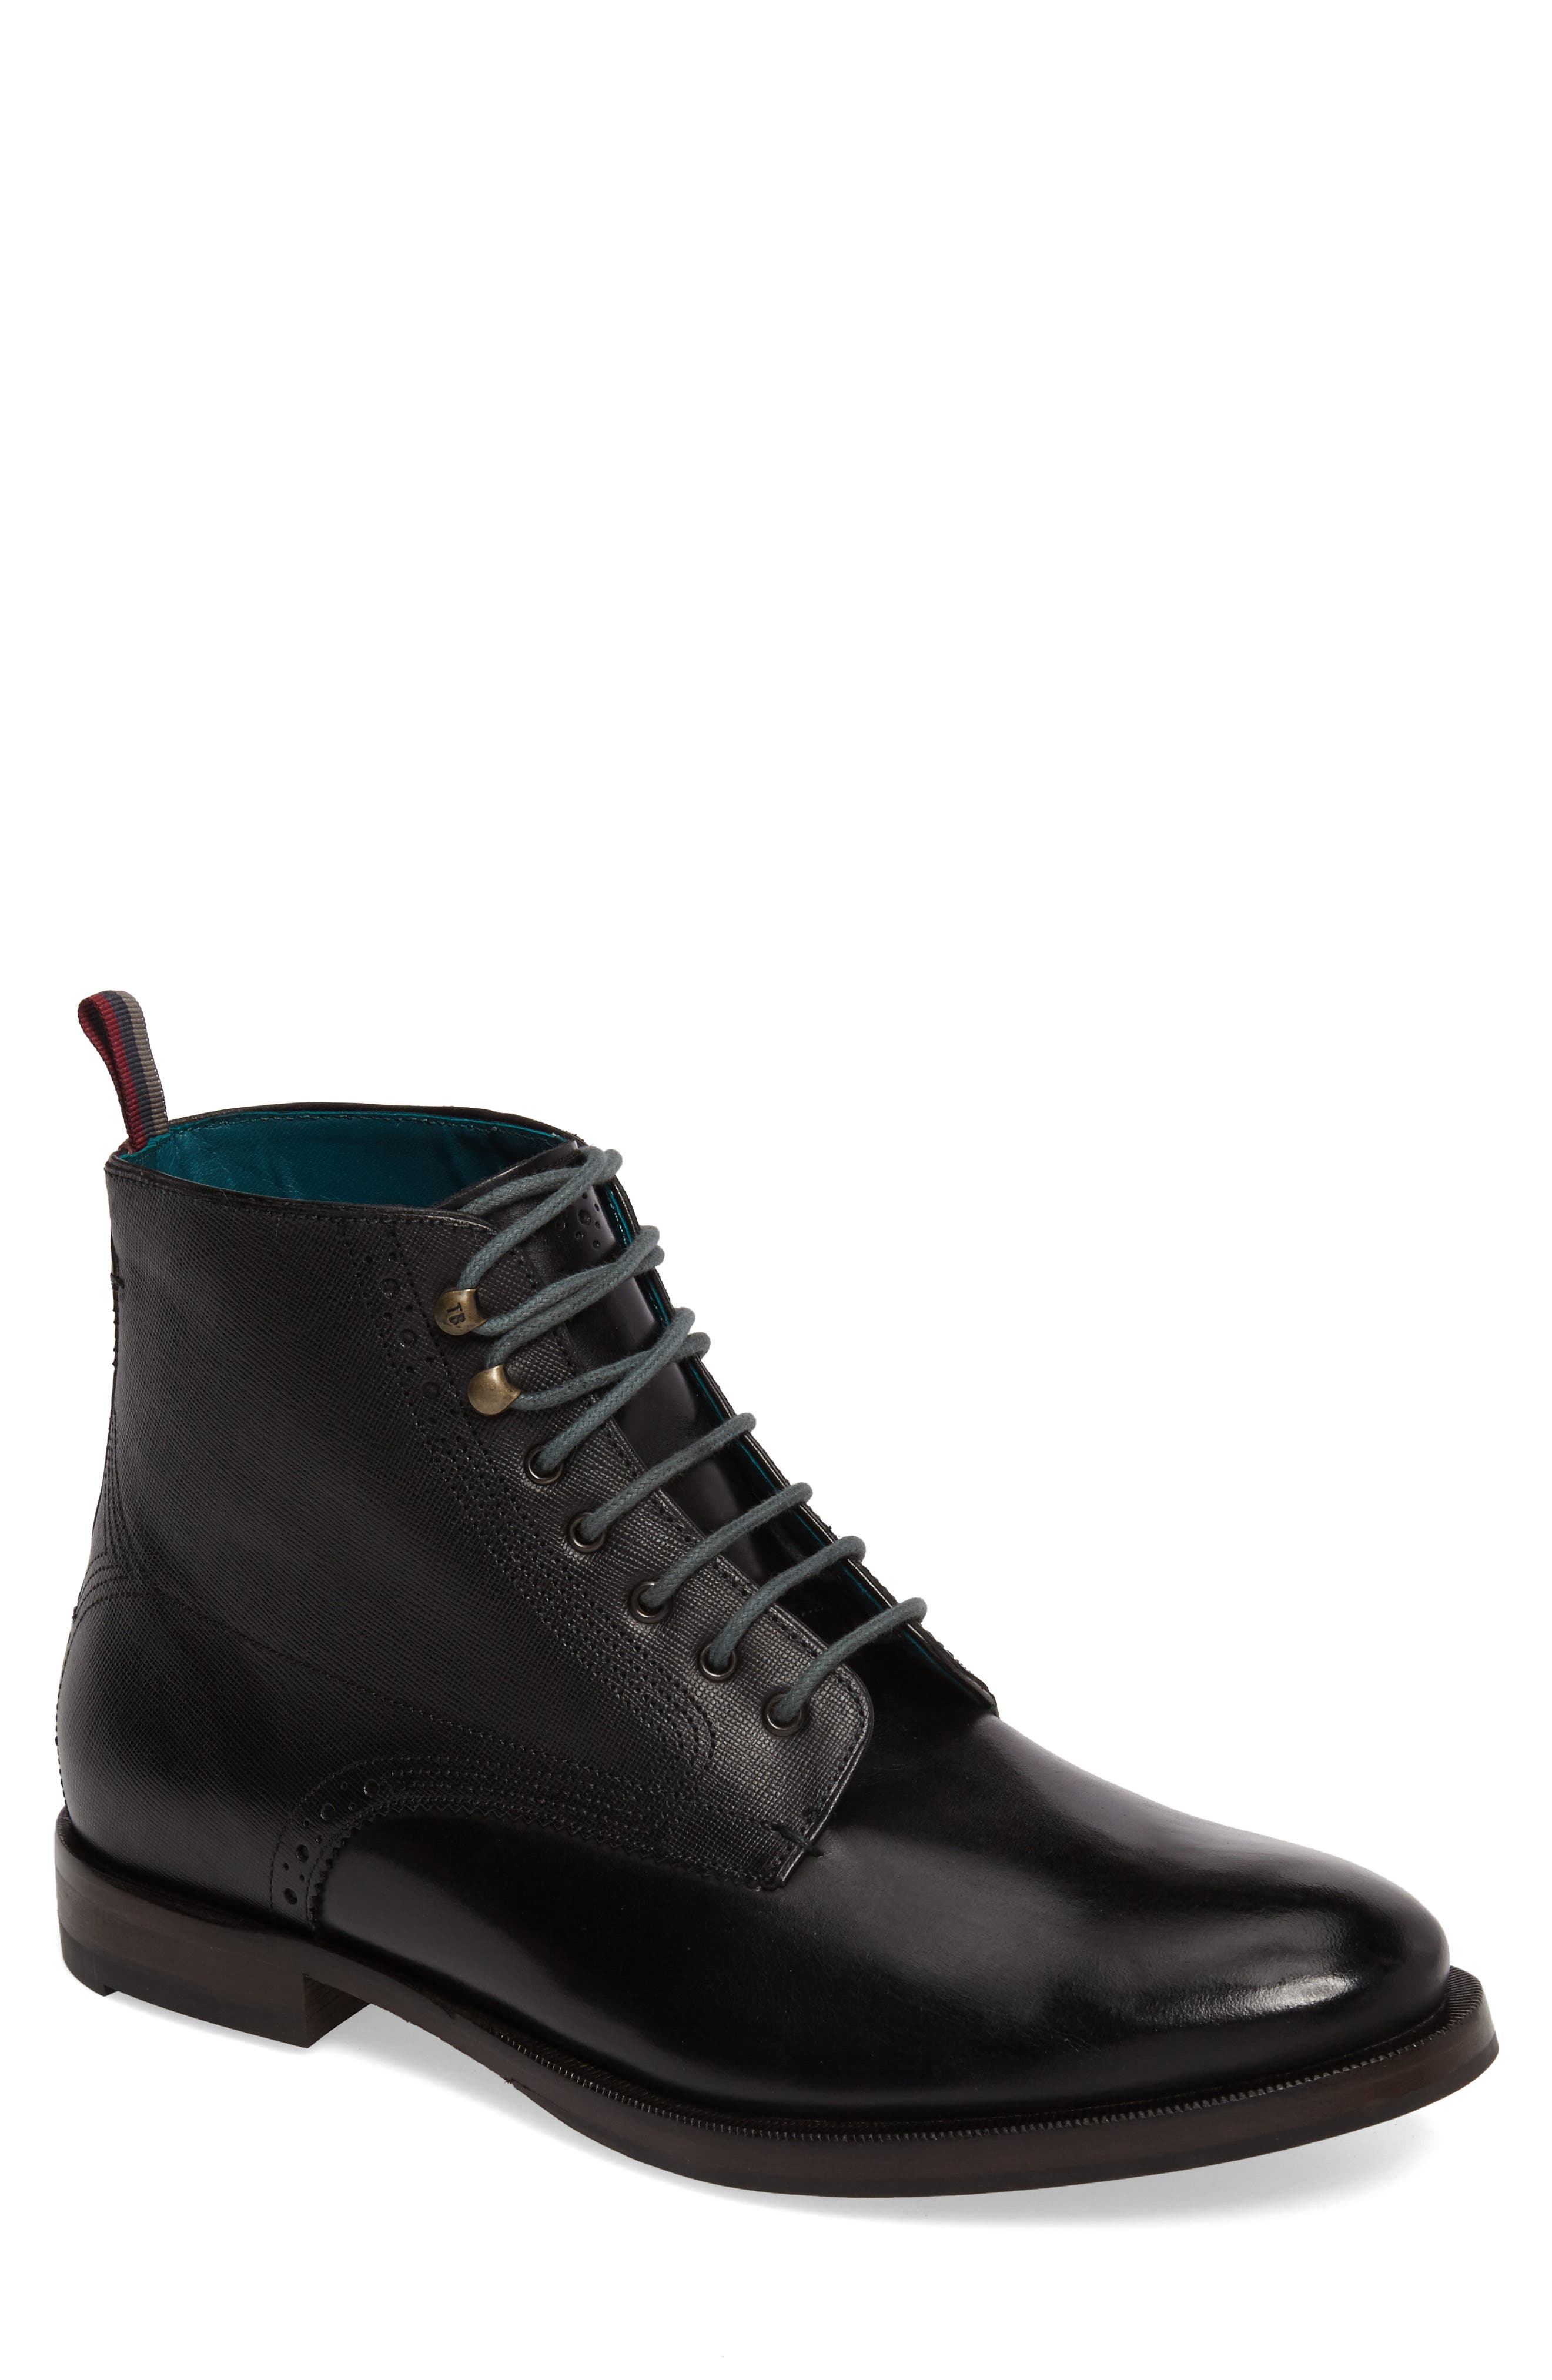 Dhavin Embossed Boot,                             Main thumbnail 1, color,                             Black Leather